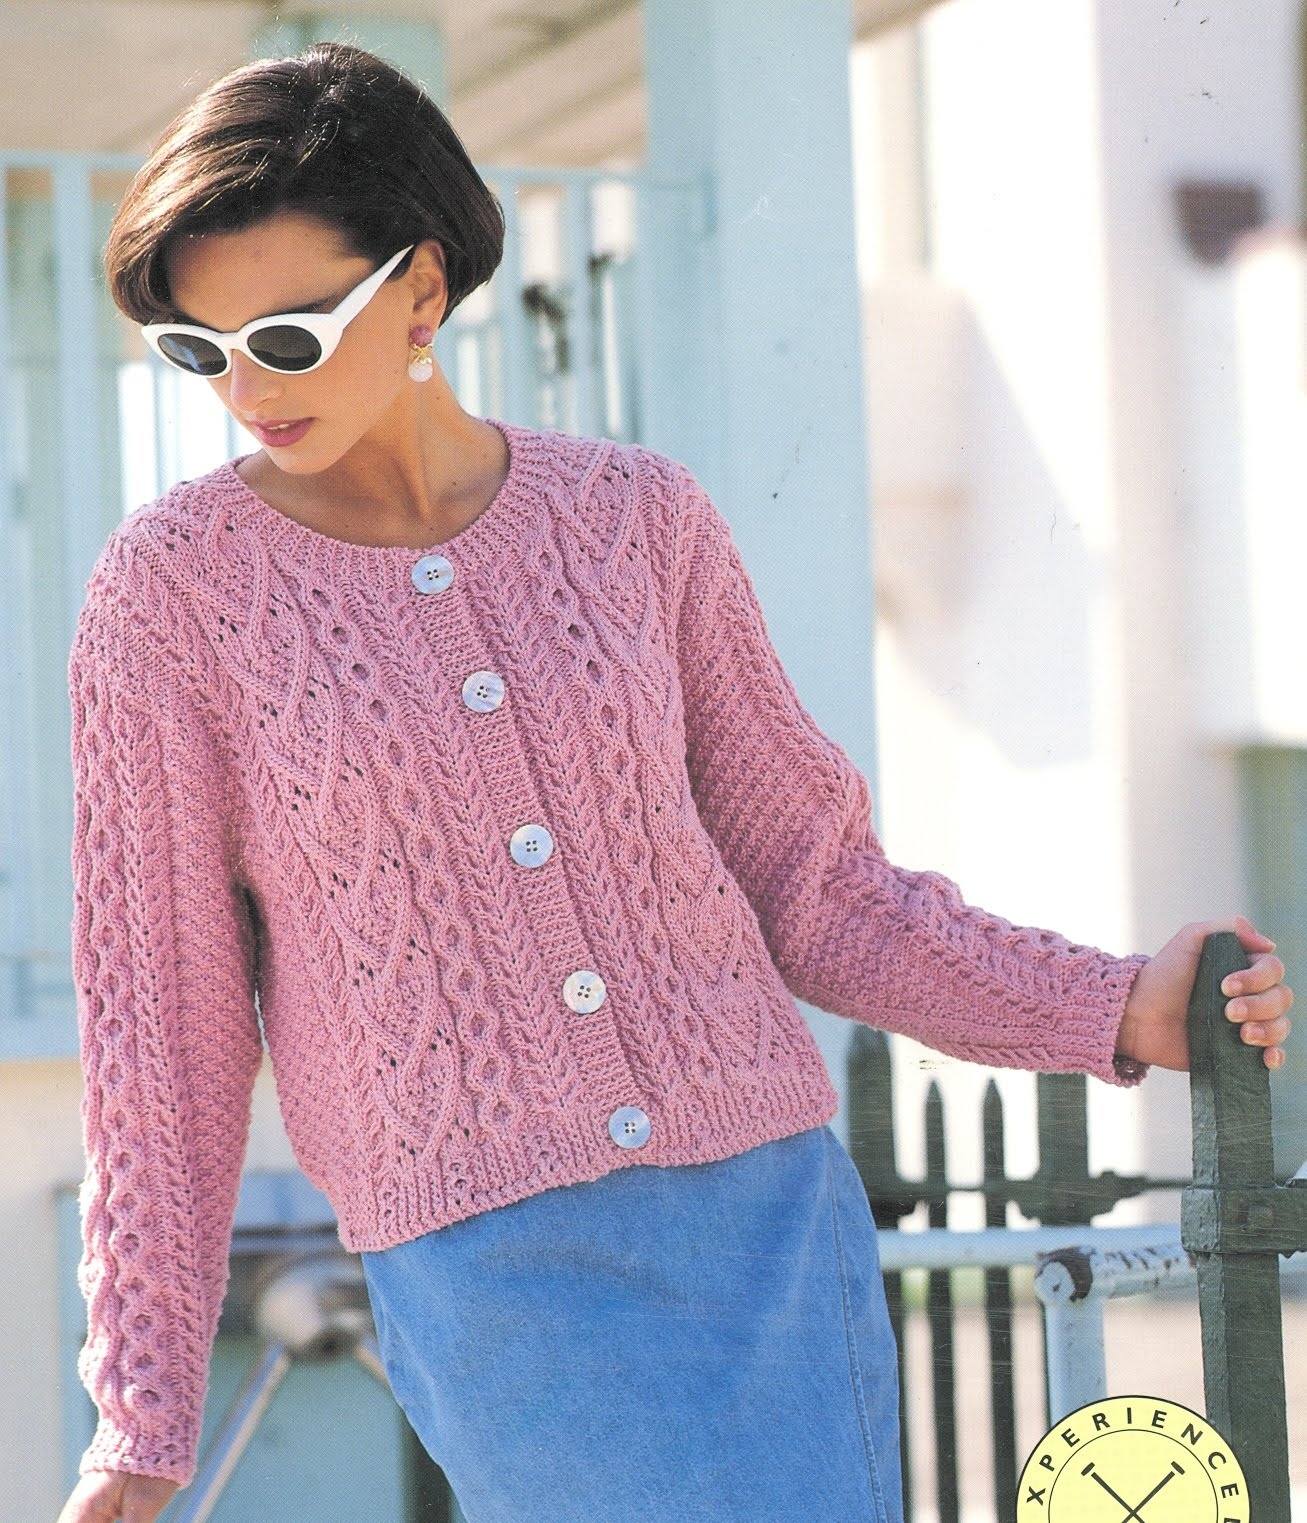 Sara's Colorwave Blog: ARAN SWEATERS- MIXED PERSONAL HISTORY